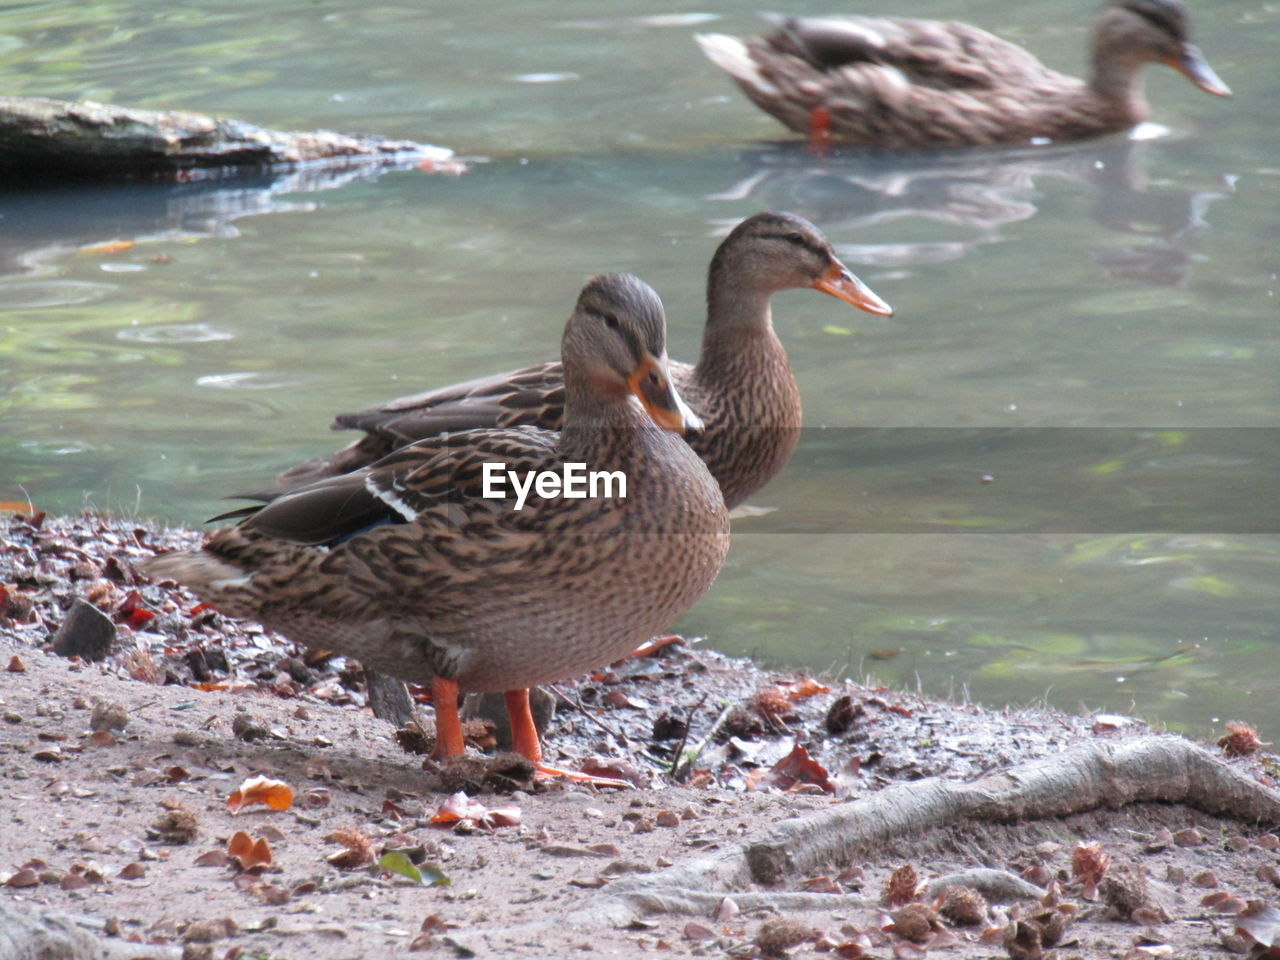 animals in the wild, animal wildlife, bird, animal themes, vertebrate, animal, water, lake, group of animals, nature, day, no people, duck, poultry, lakeshore, beach, focus on foreground, outdoors